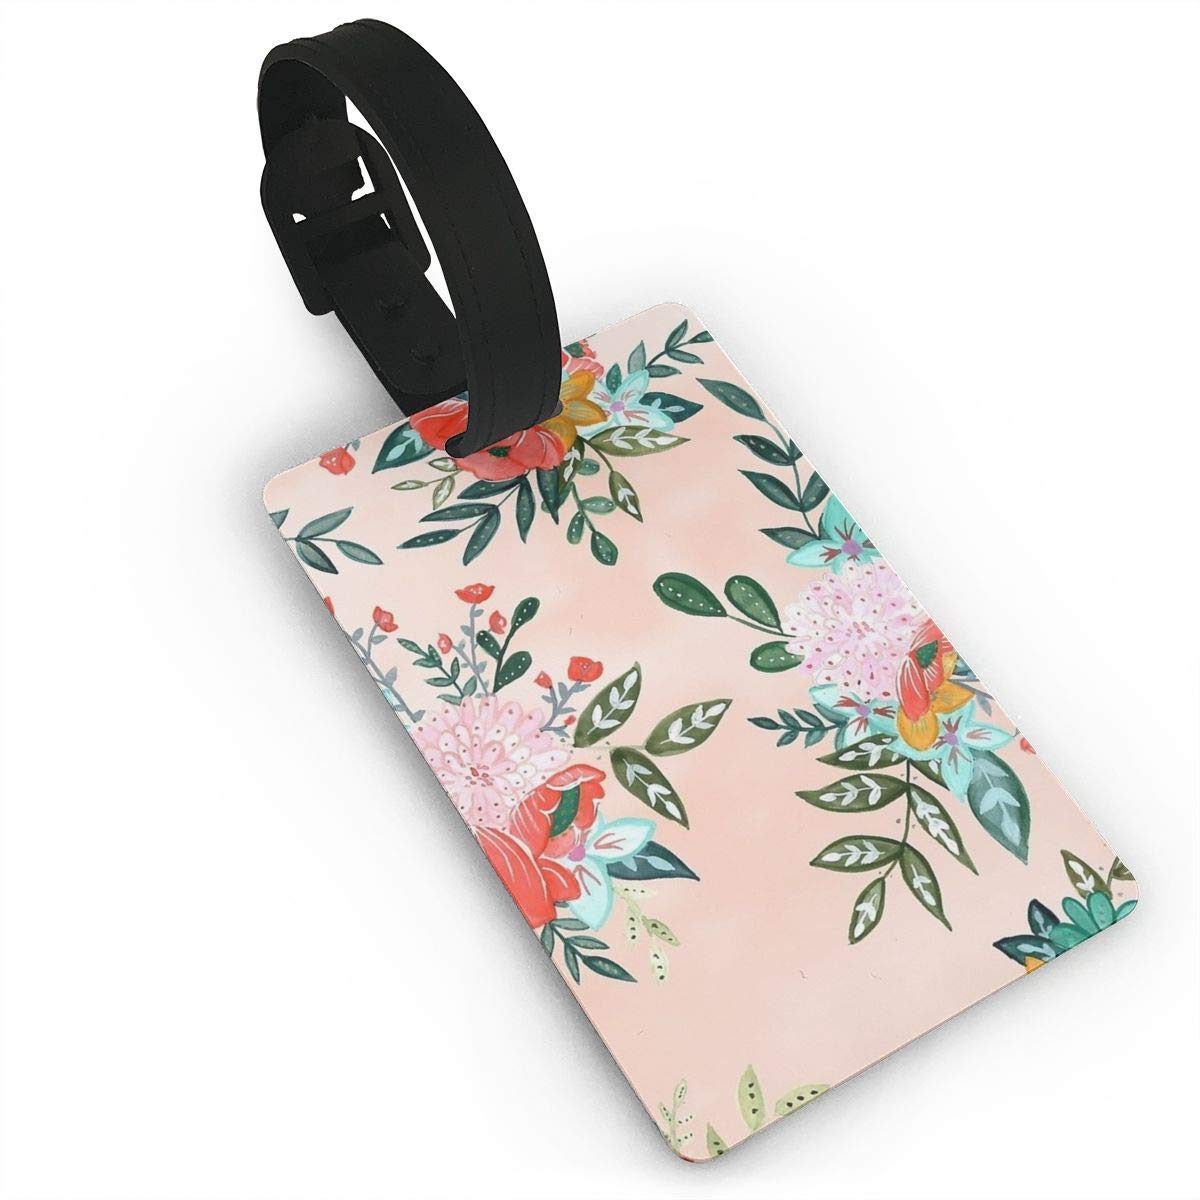 Custom Business Travel Accessories Gift Seagulls Luggage Tags For Women//Men